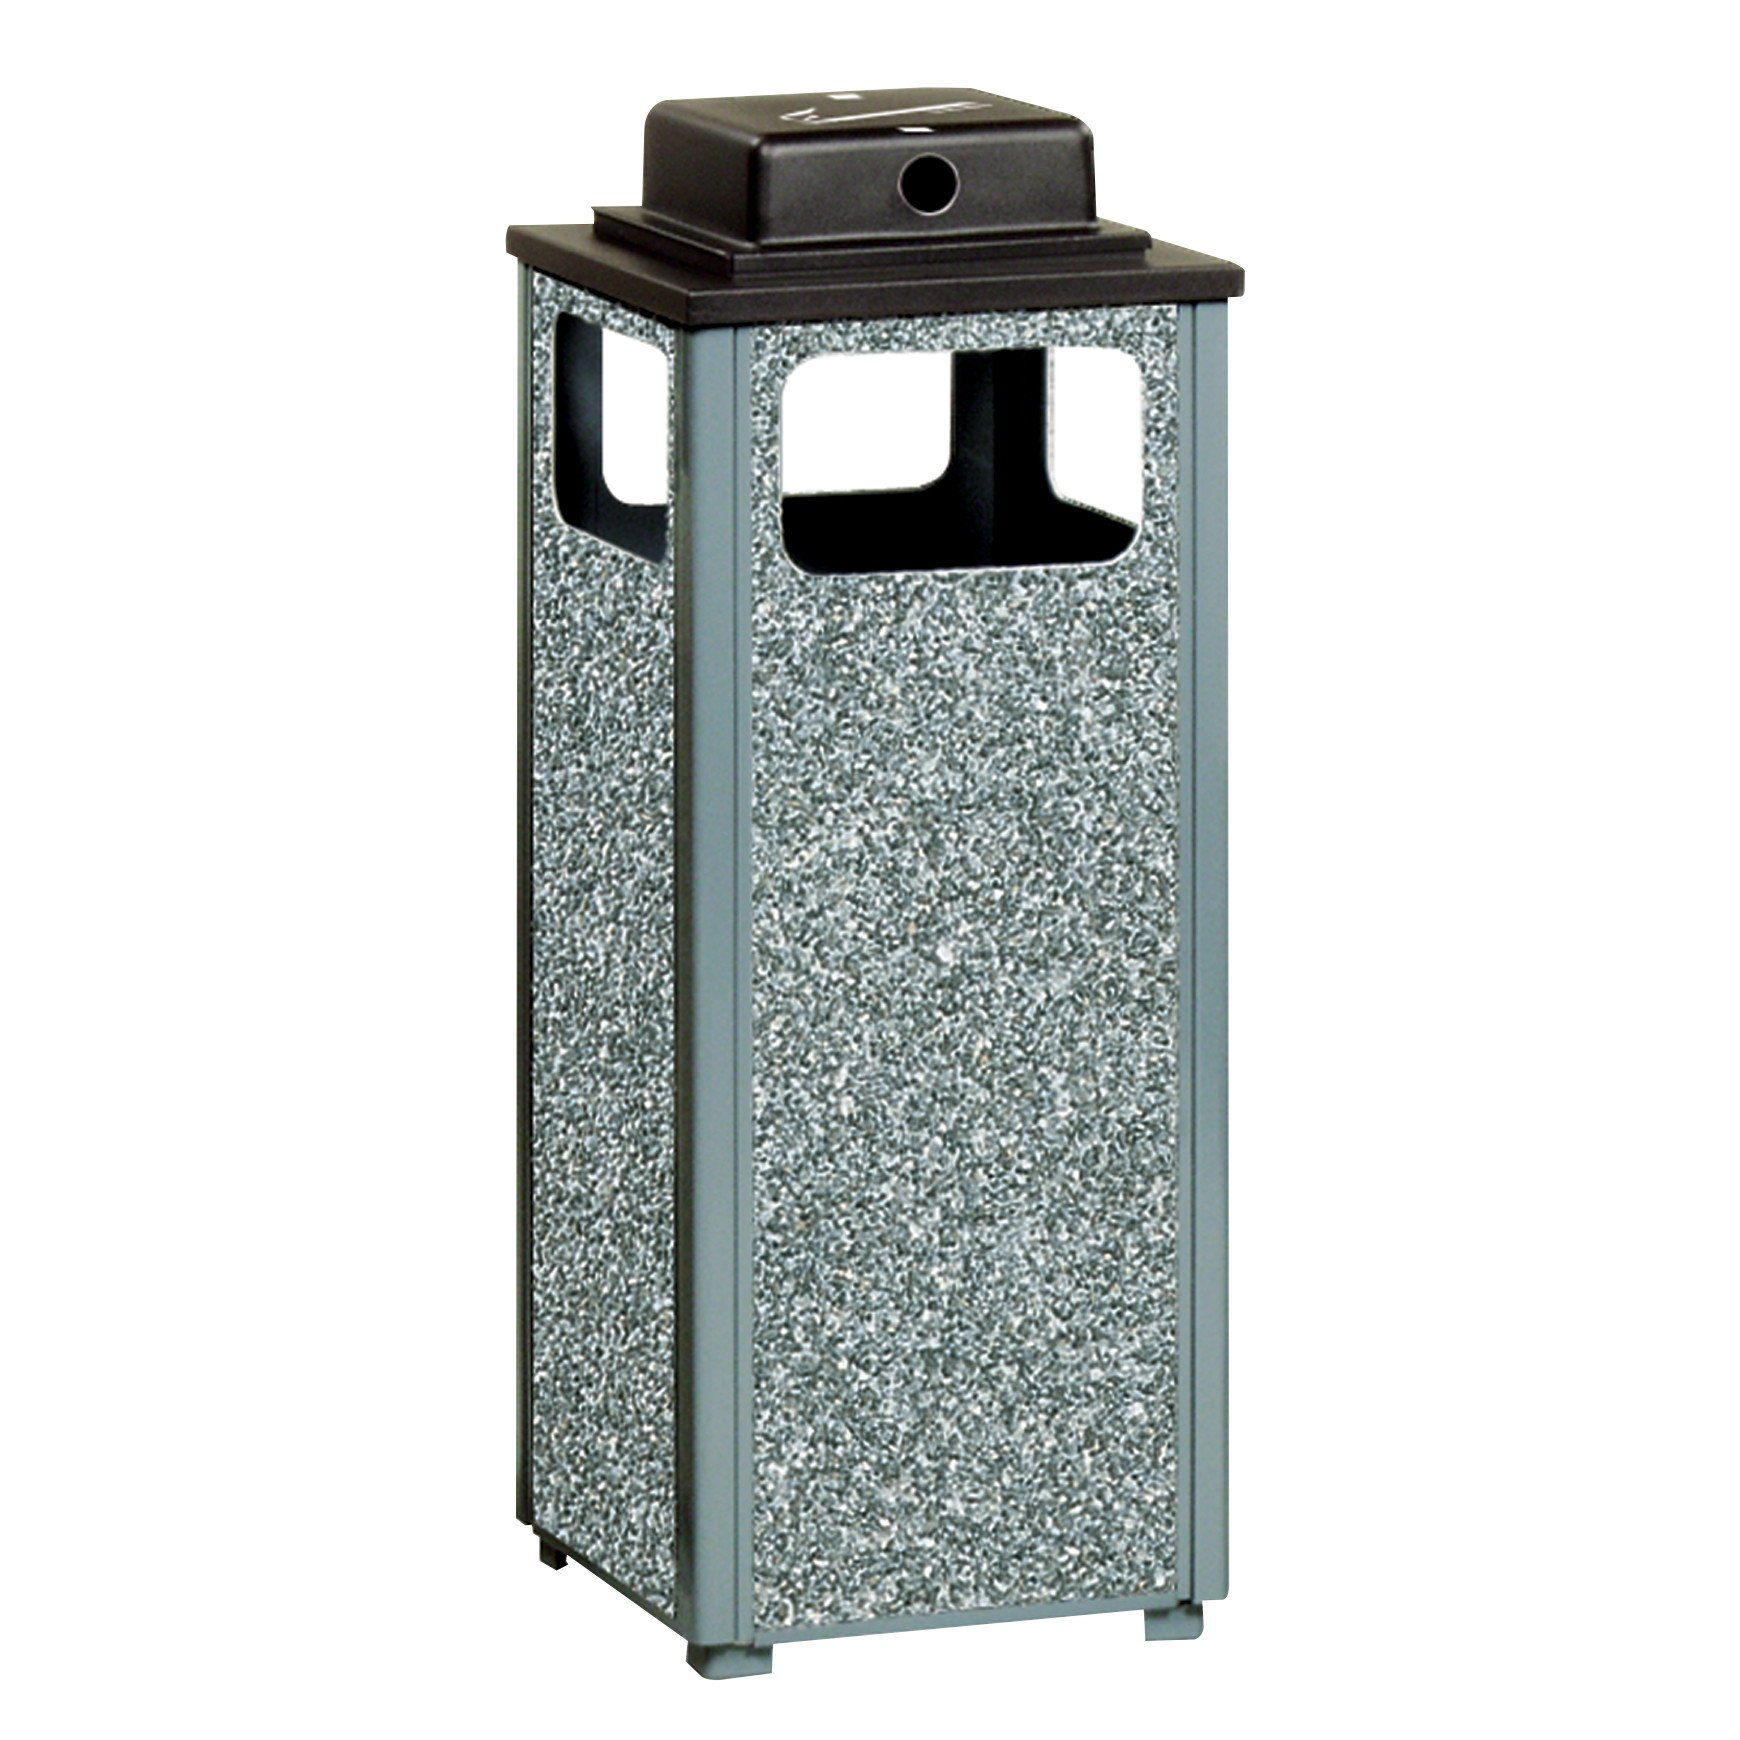 Rubbermaid Commercial Products FGR12WU2000PL Dimension 500 Series Ash/Trash Refuse Container with Weather Urn (12-Gallon)